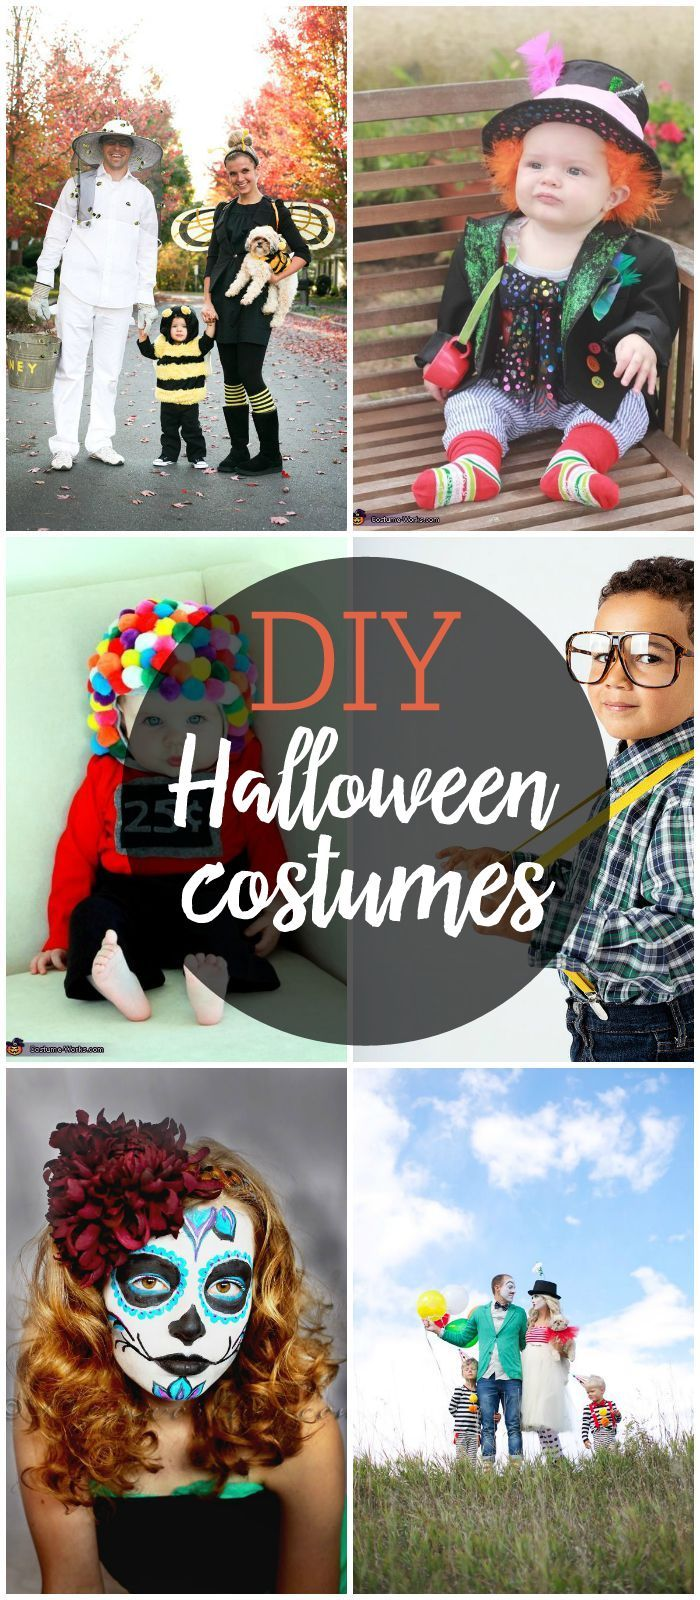 Some of the best DIY Halloween costumes I've ever seen!